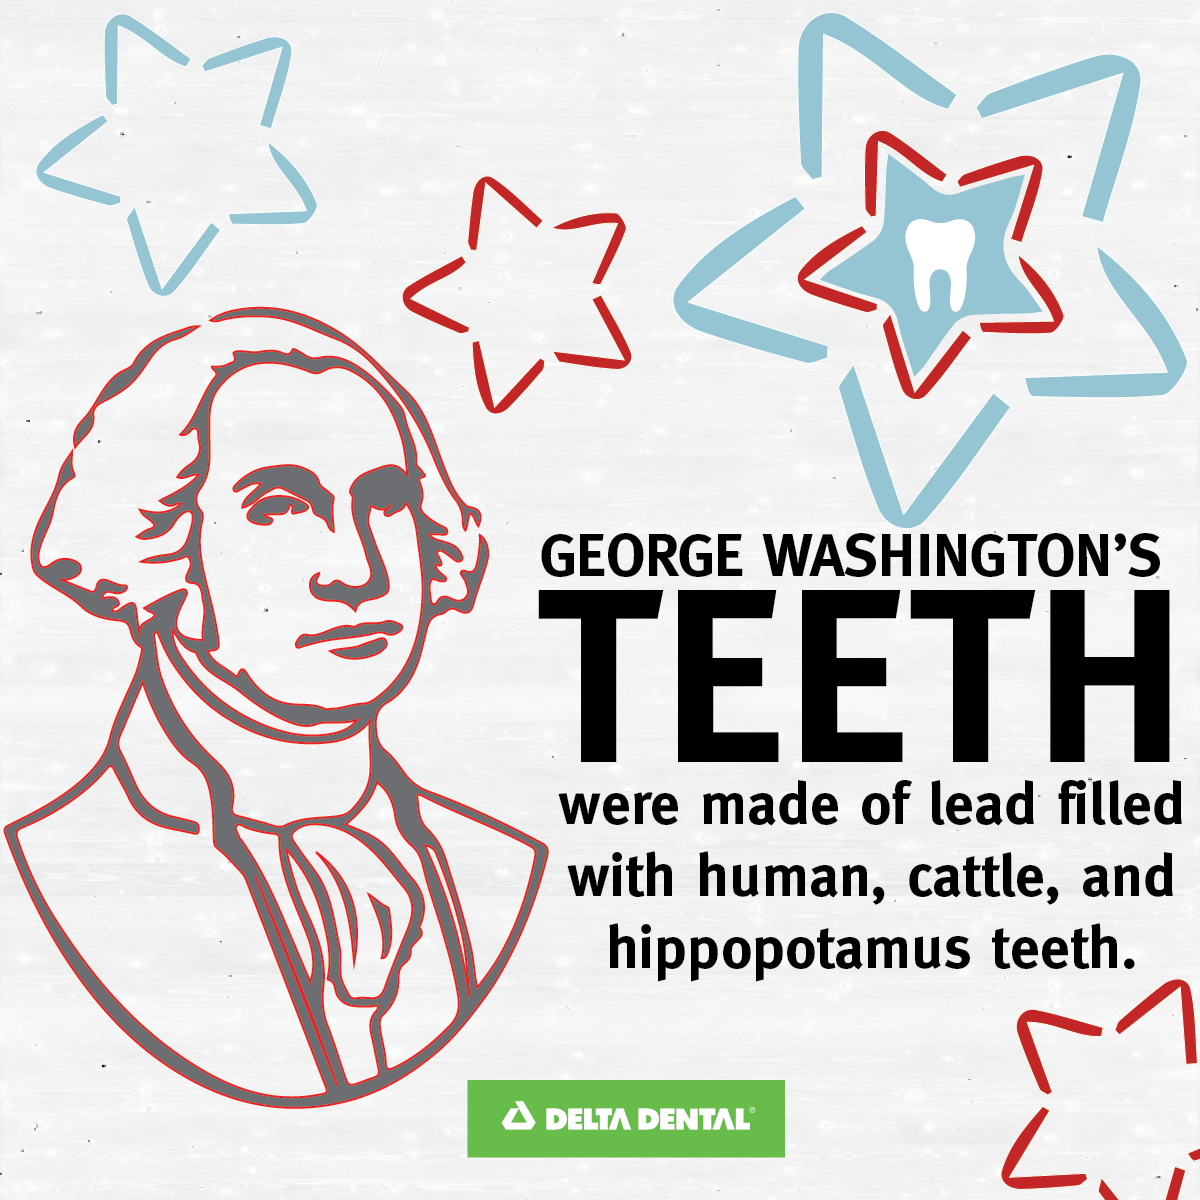 Washington's teeth weren't made of wood. His teeth were actually made of animal bones! #DeltaDental